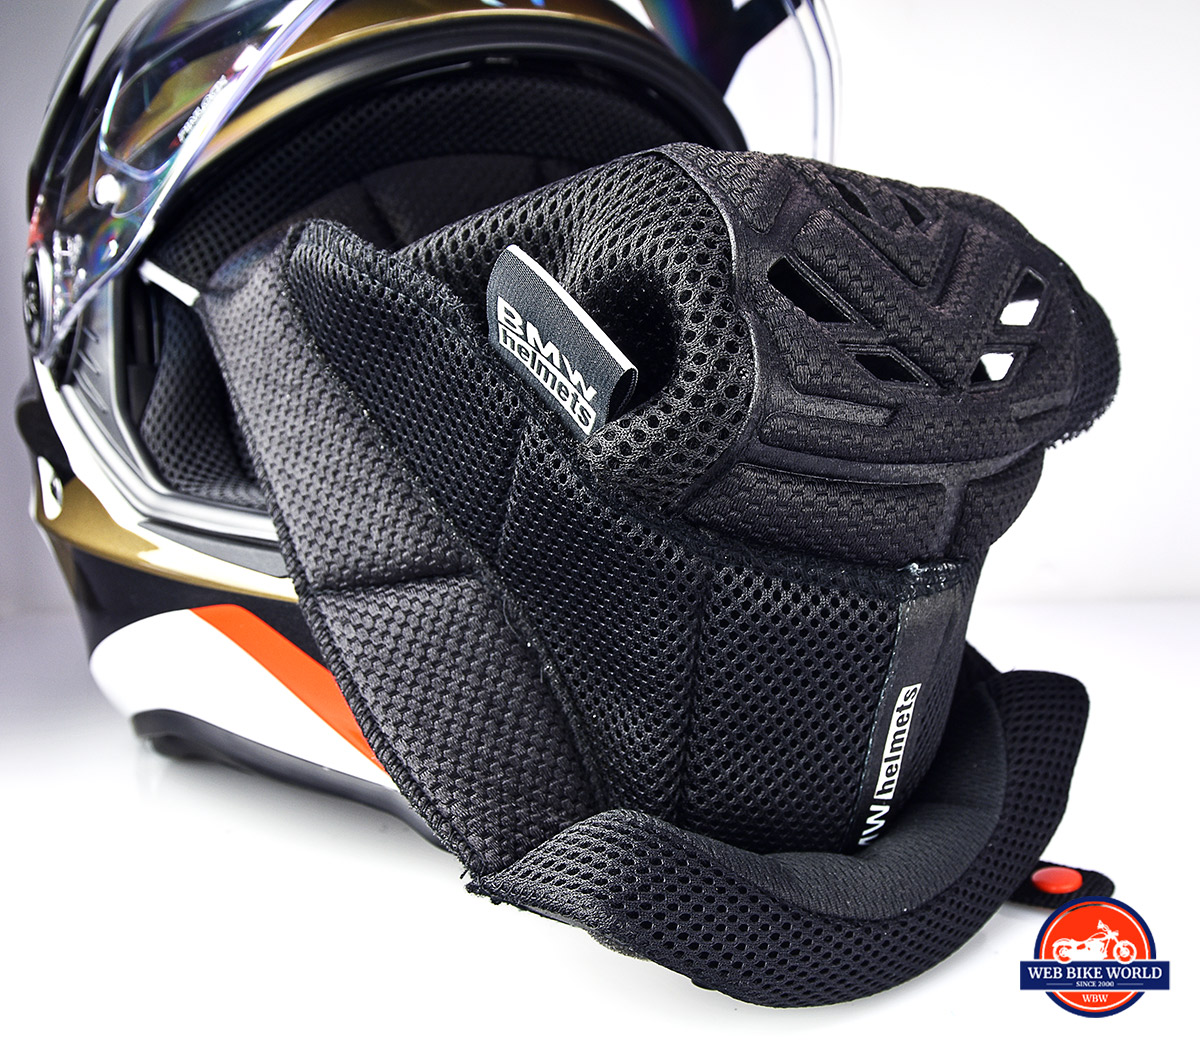 The interior comfort liner of the BMW GS Pure helmet.